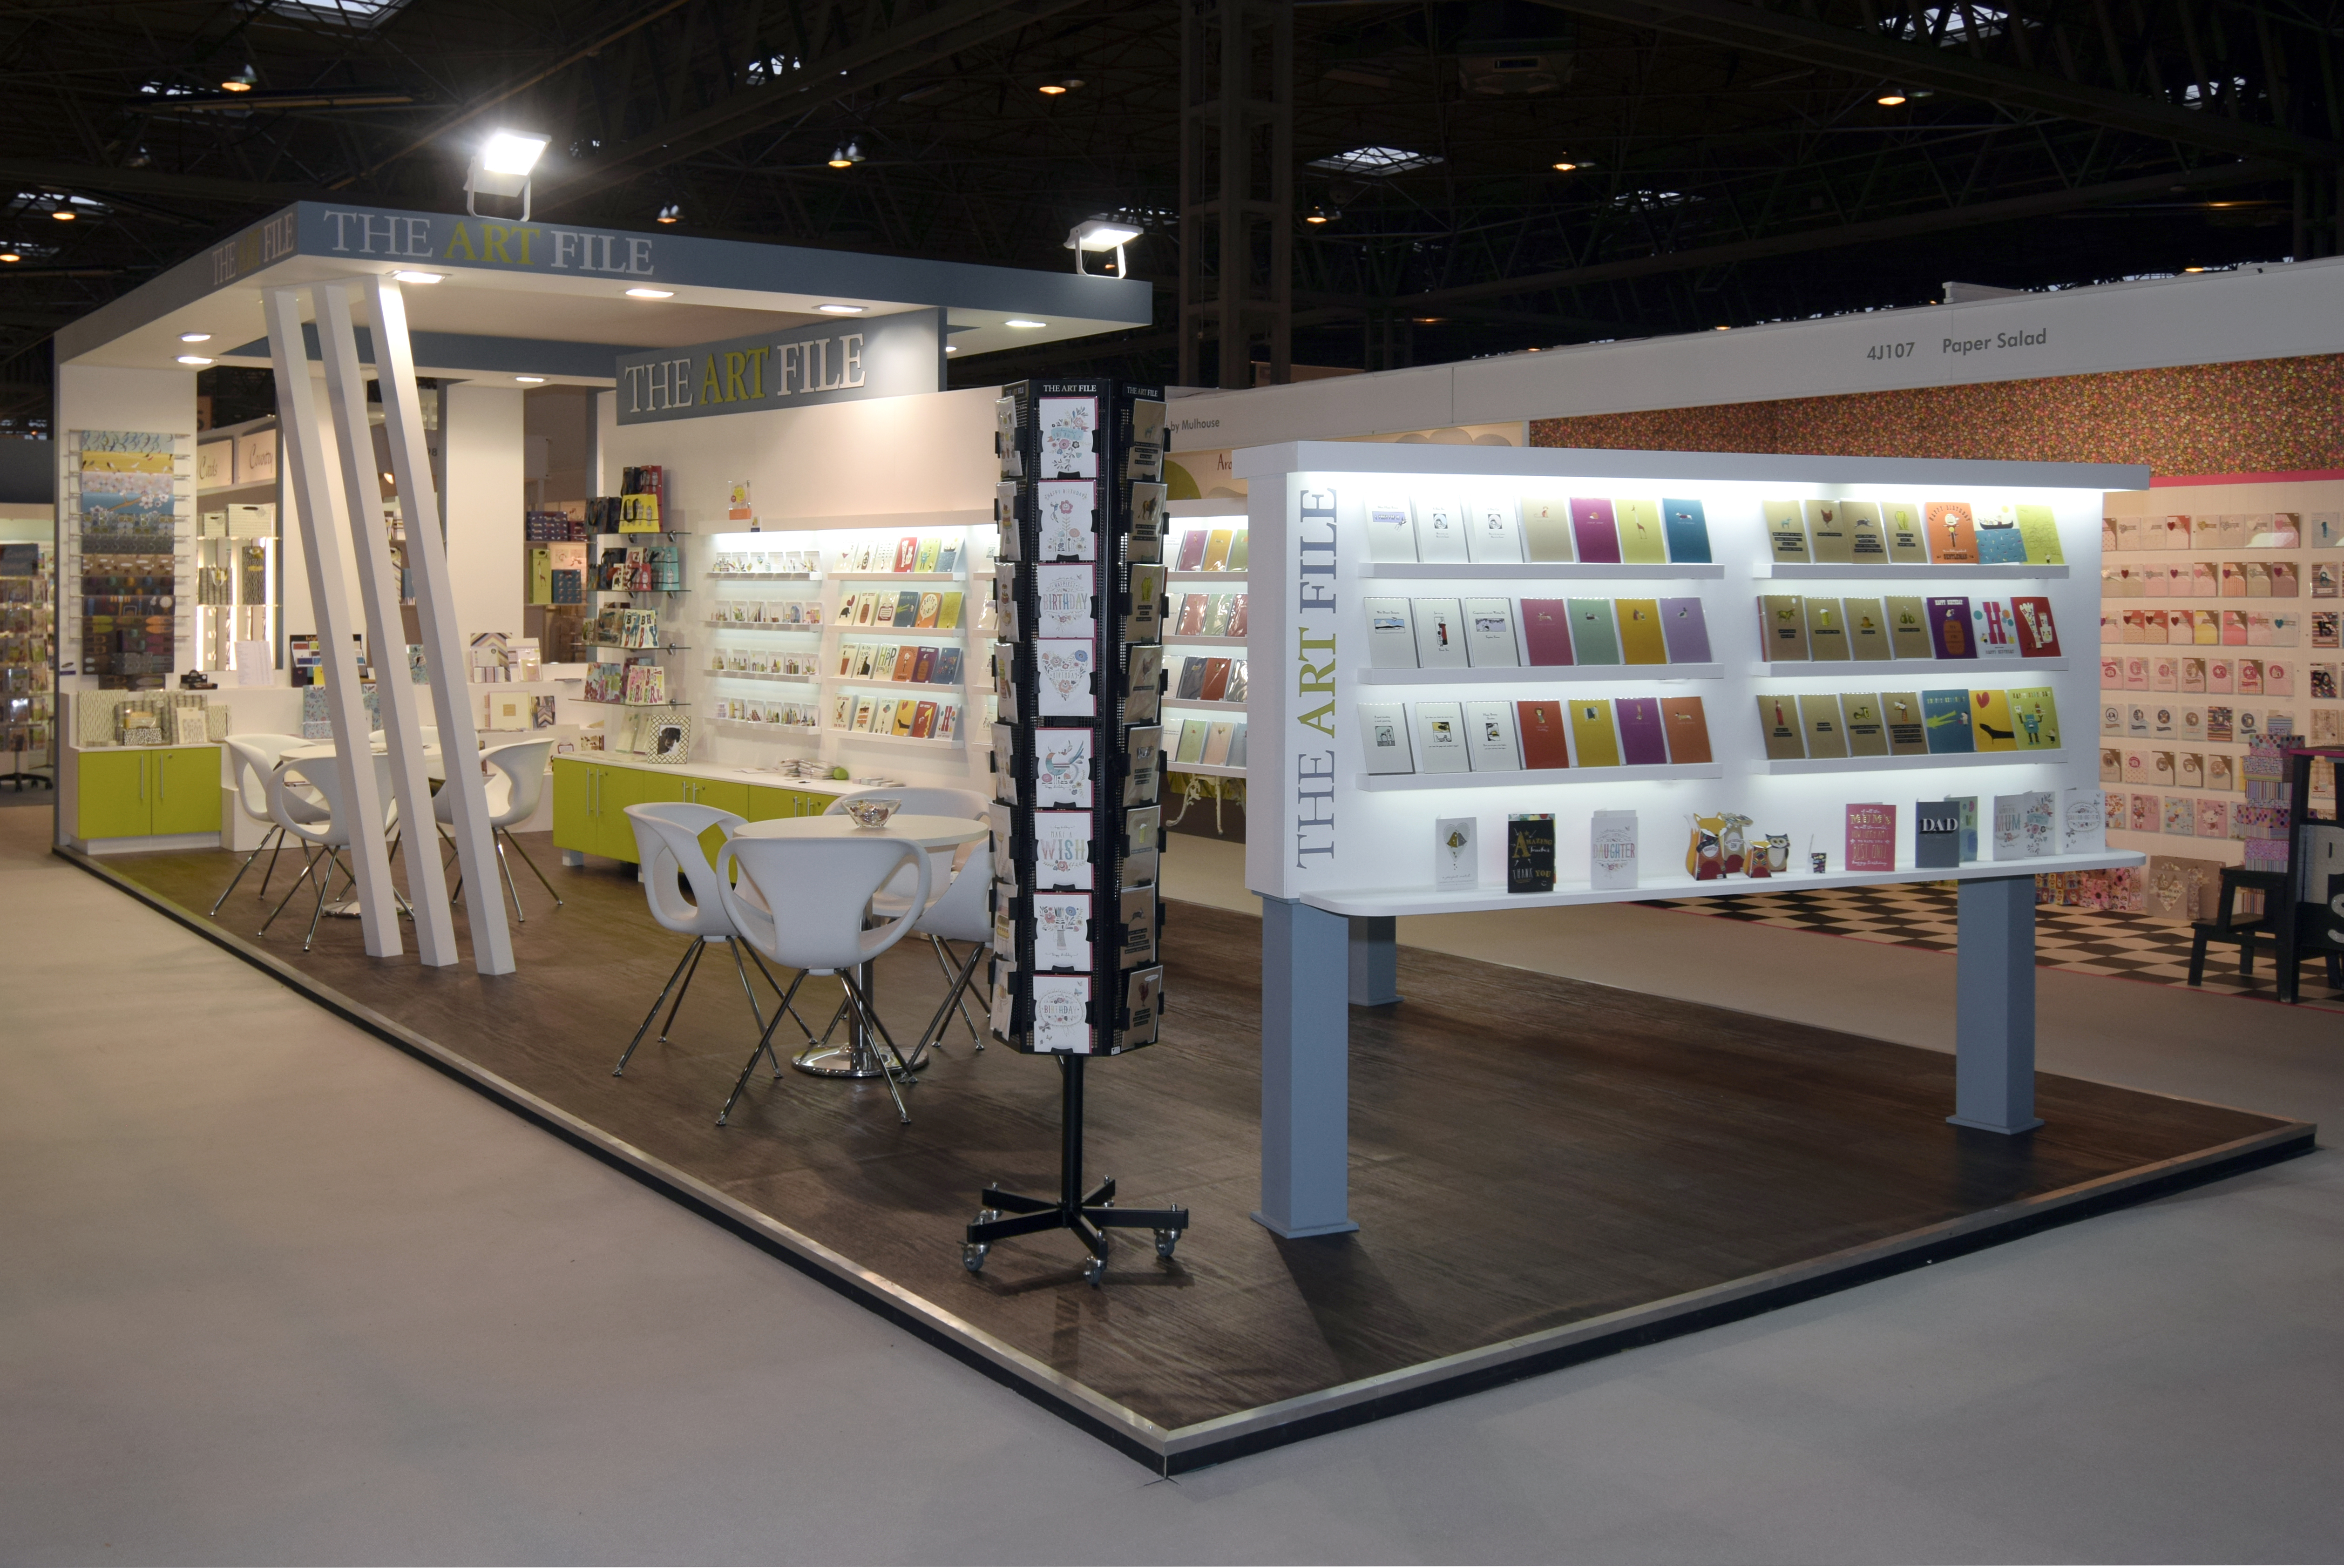 Exhibition Stand Builders Yorkshire : Art file quantum exhibitions and displays